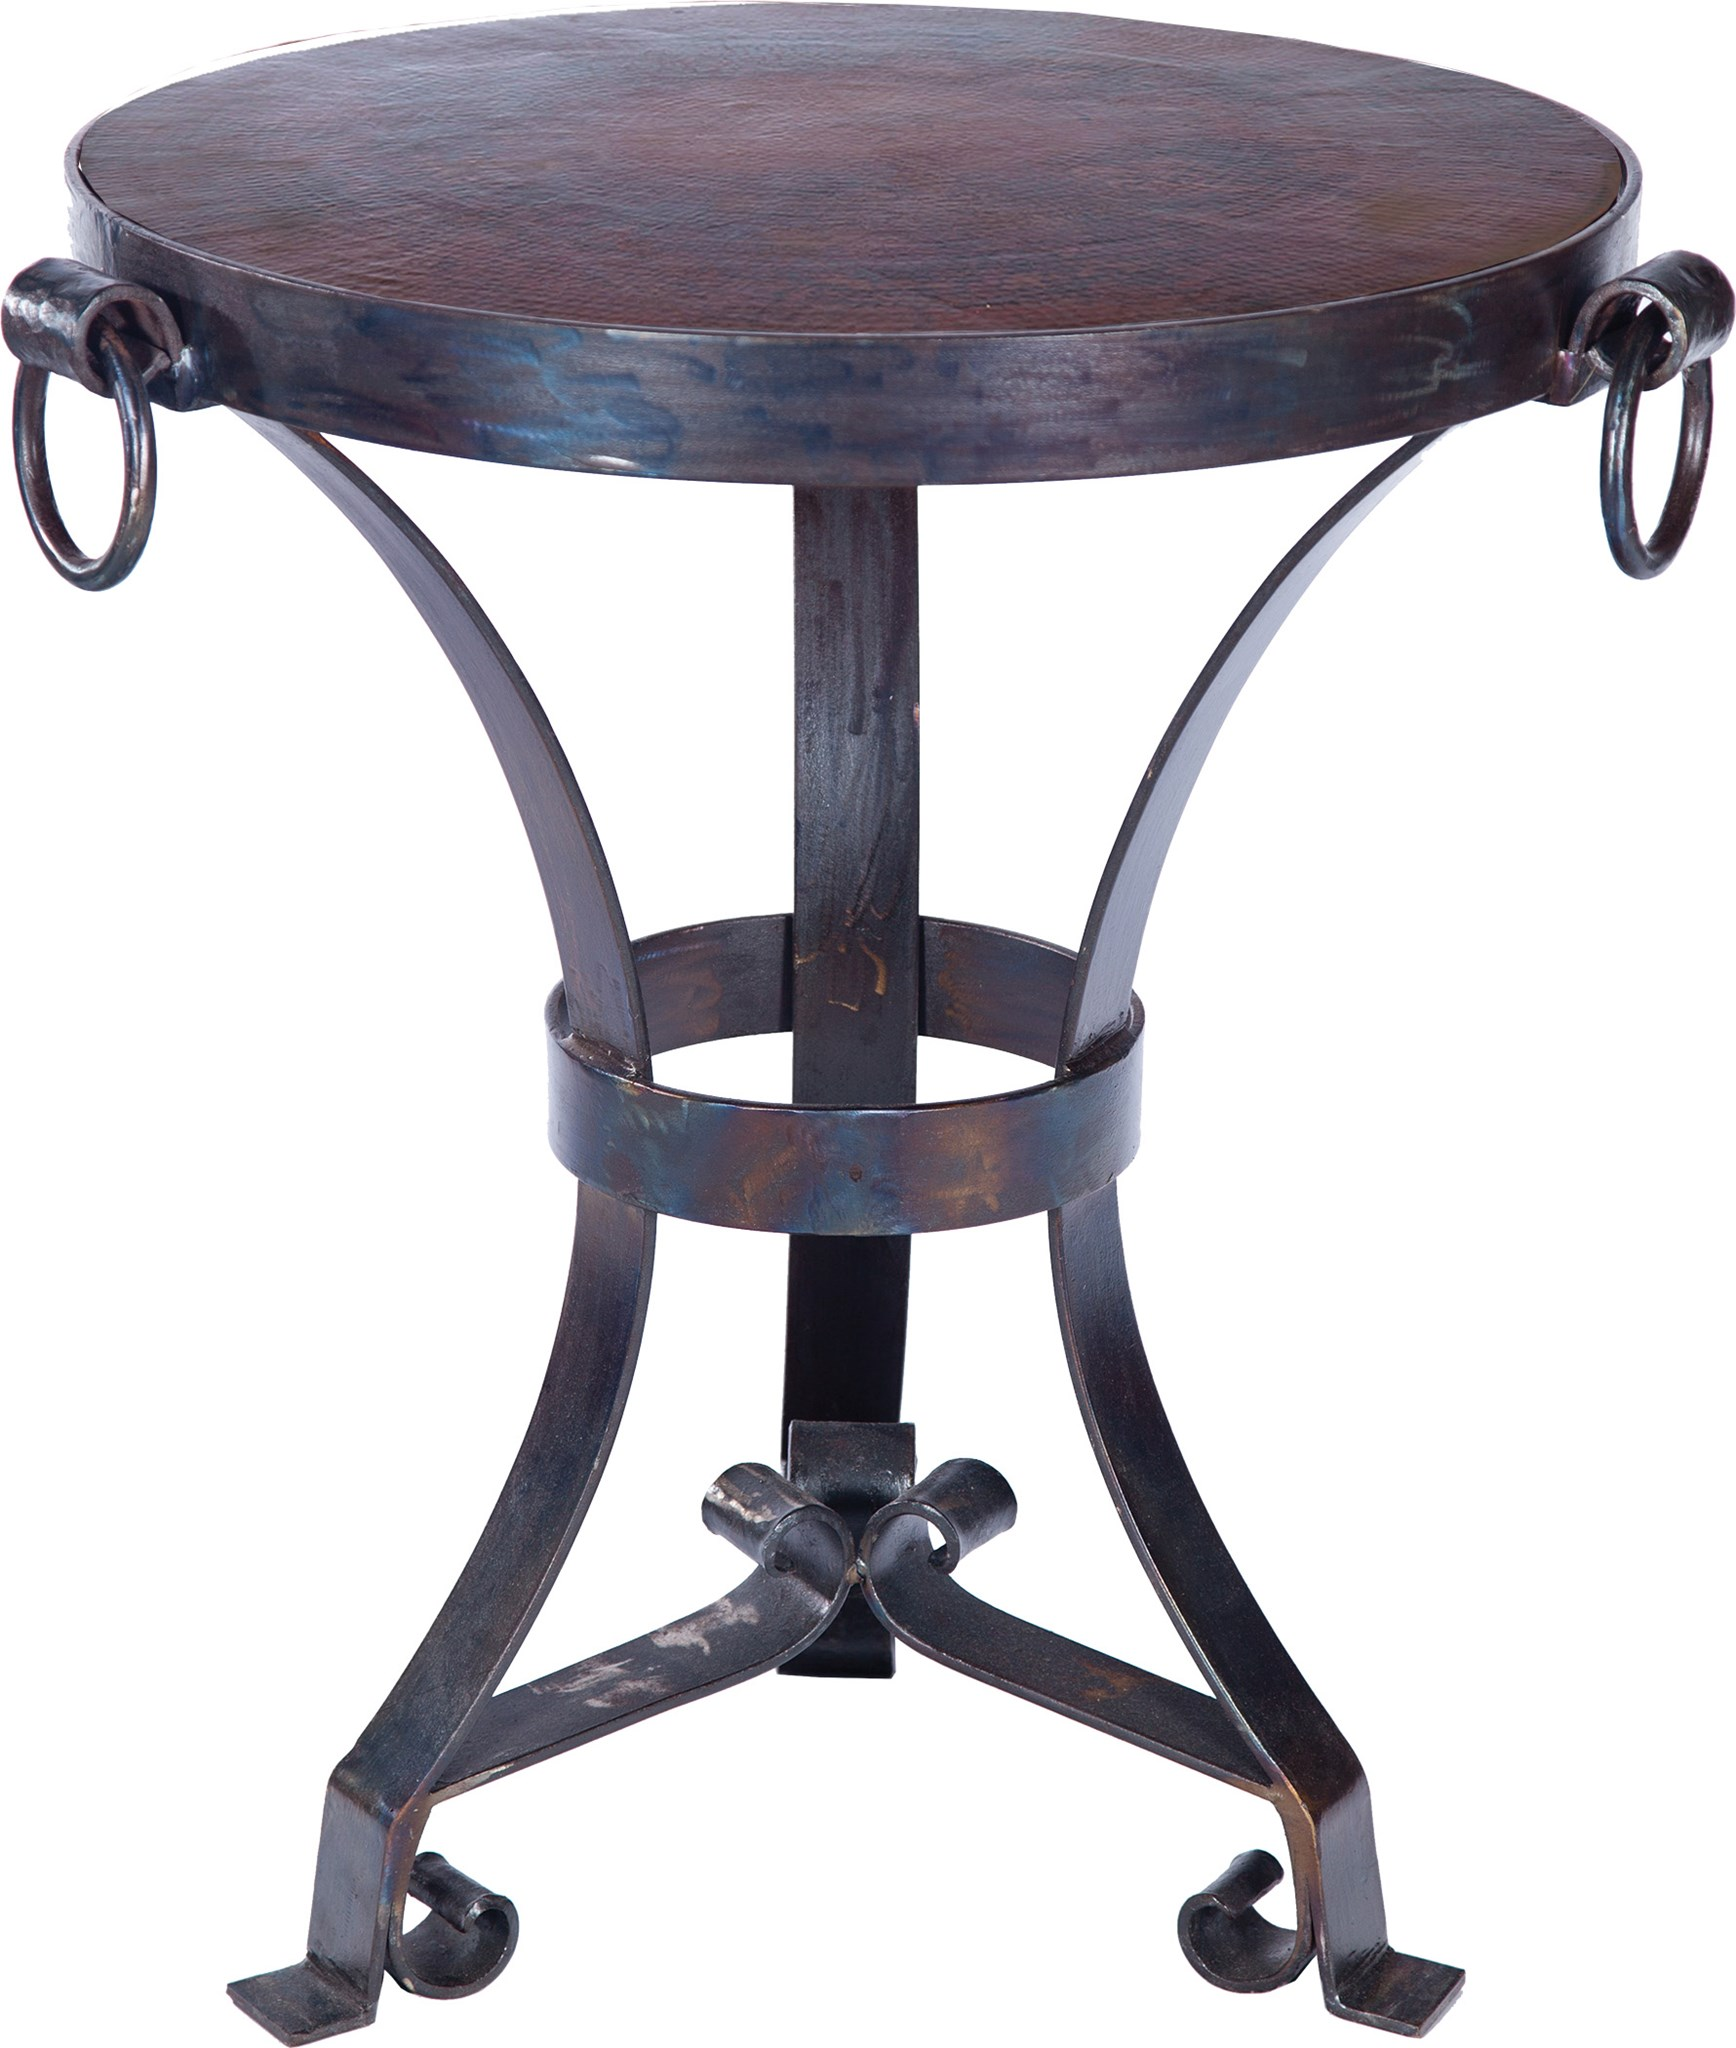 accent table with hardware rings and round dark brown hammered copper top boulevard urban living cotton napkins glass nesting side tables small garden furniture large shade